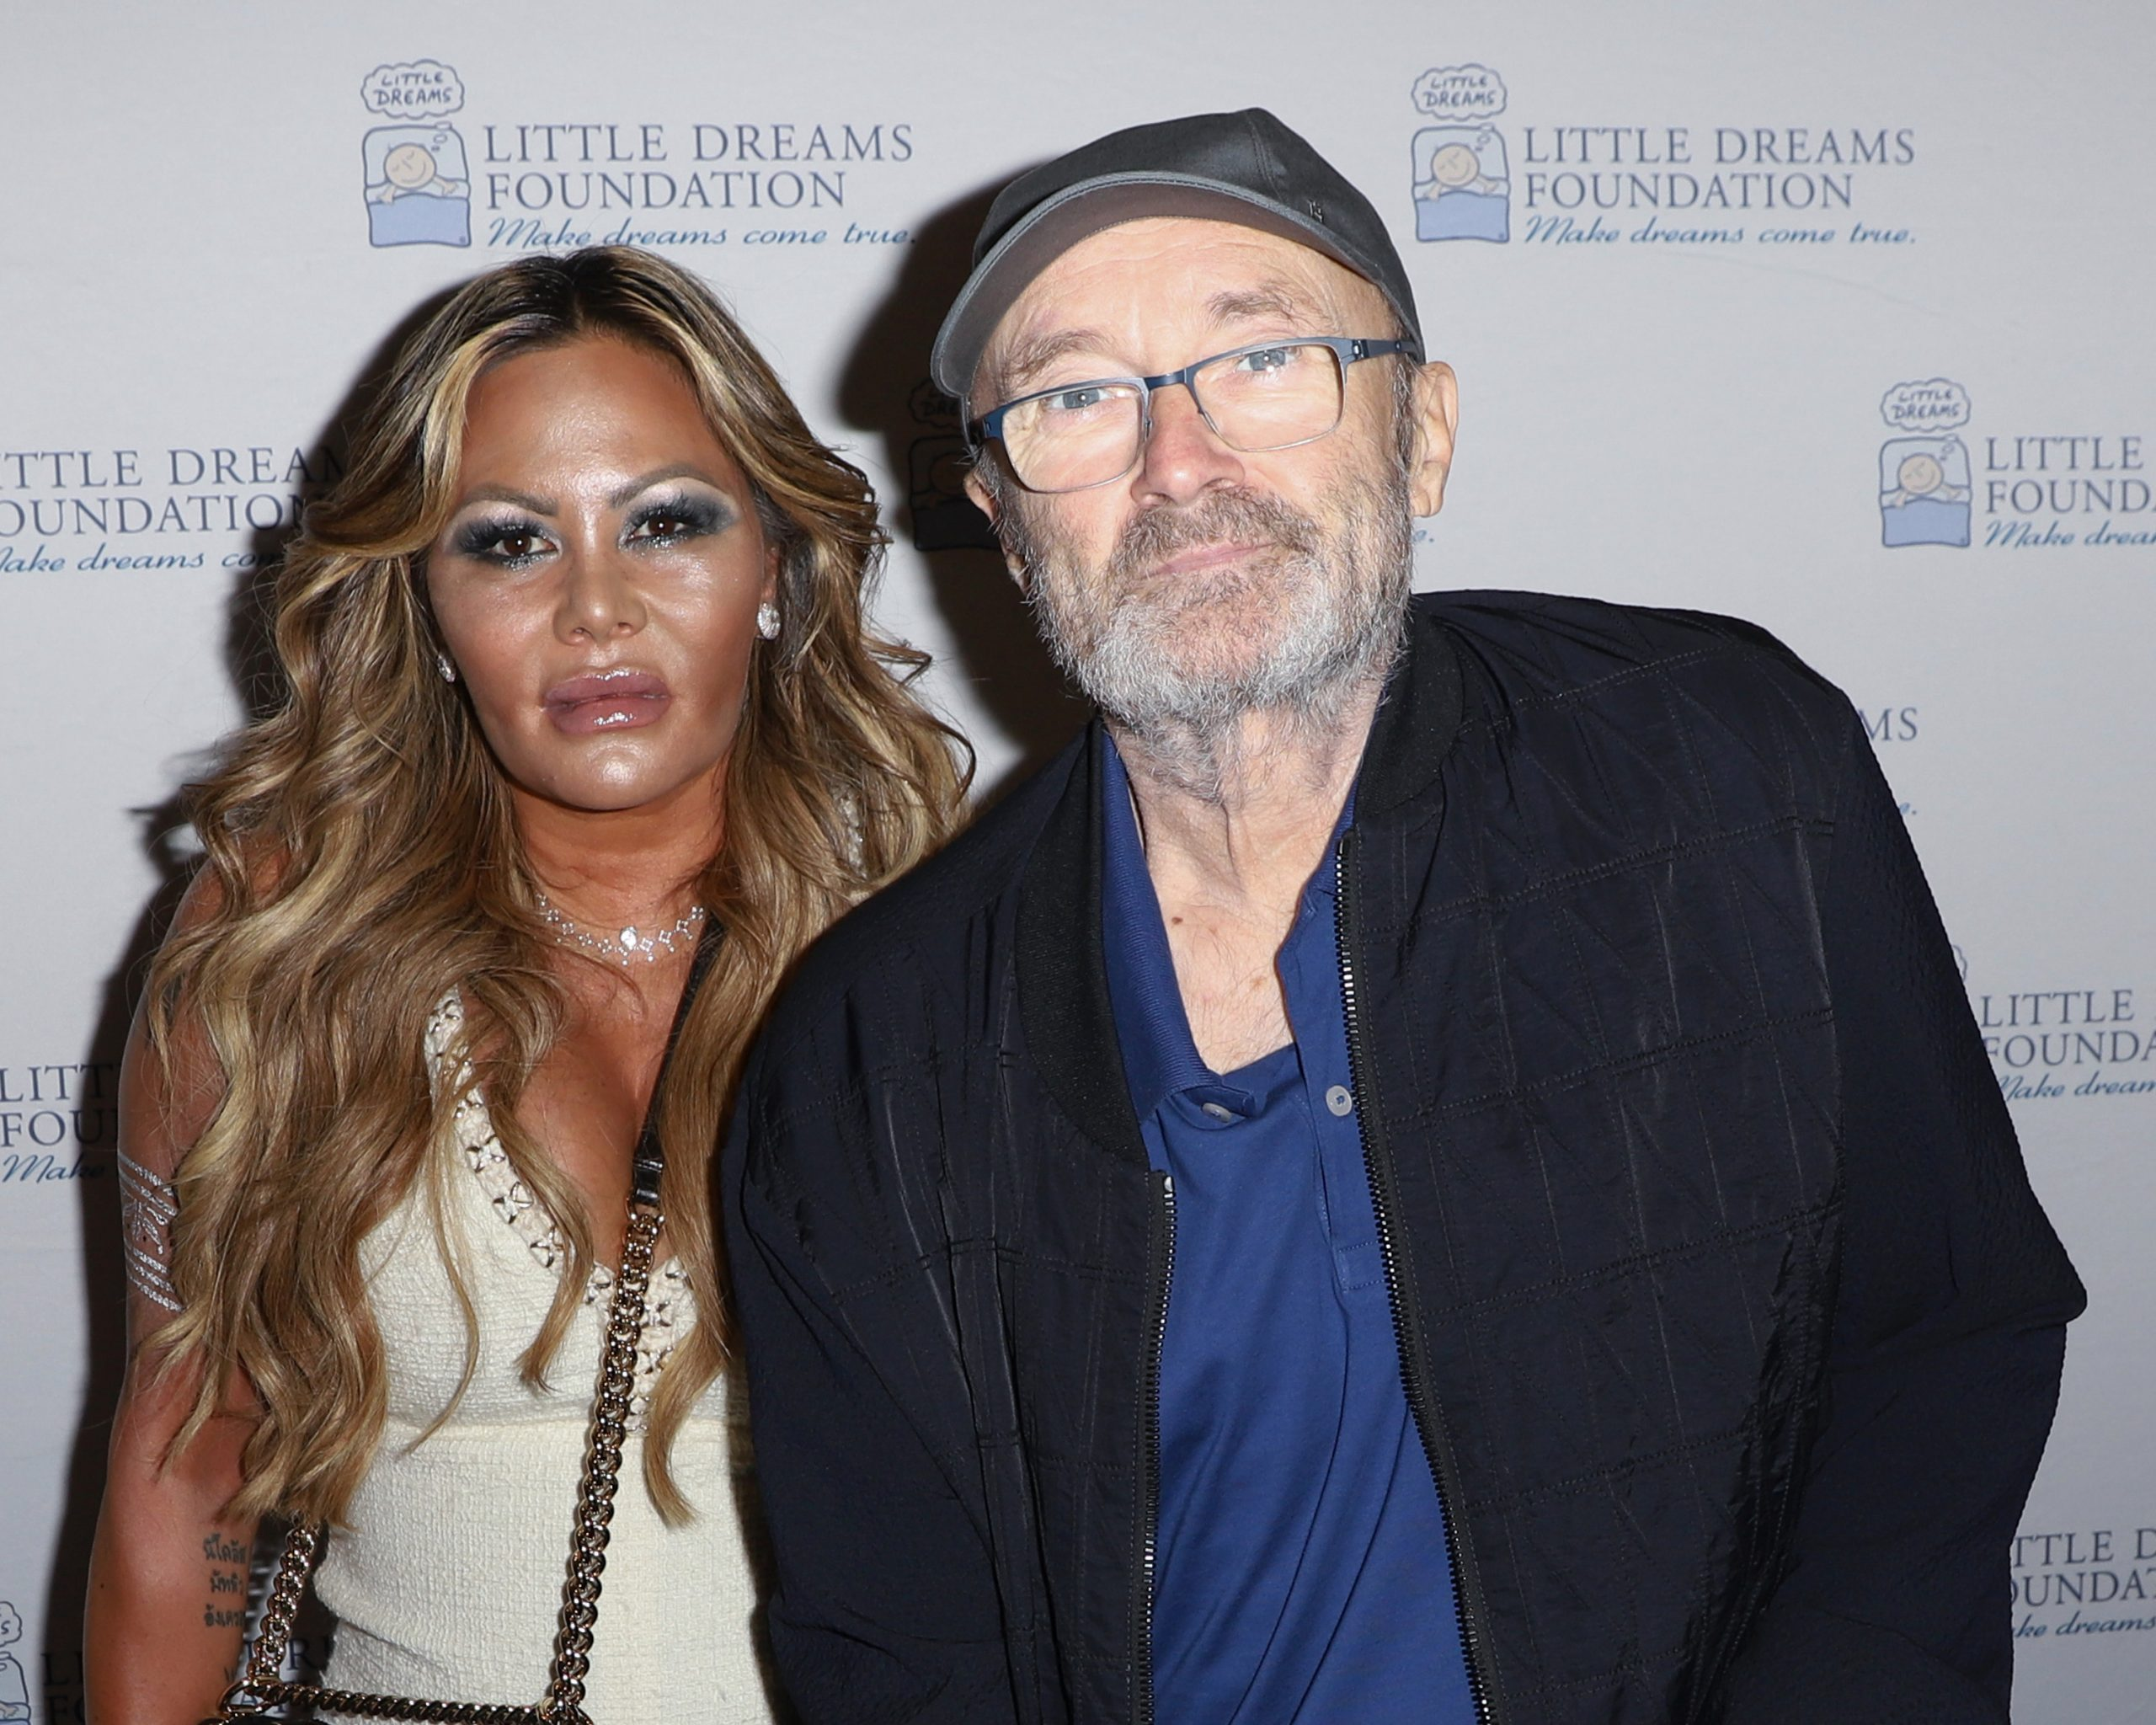 Phil Collins And Orianne Cevey S Relationship Through The Years News 9 On Time In 1999, orianne cevey married husband phil collins as his third wife. phil collins and orianne cevey s